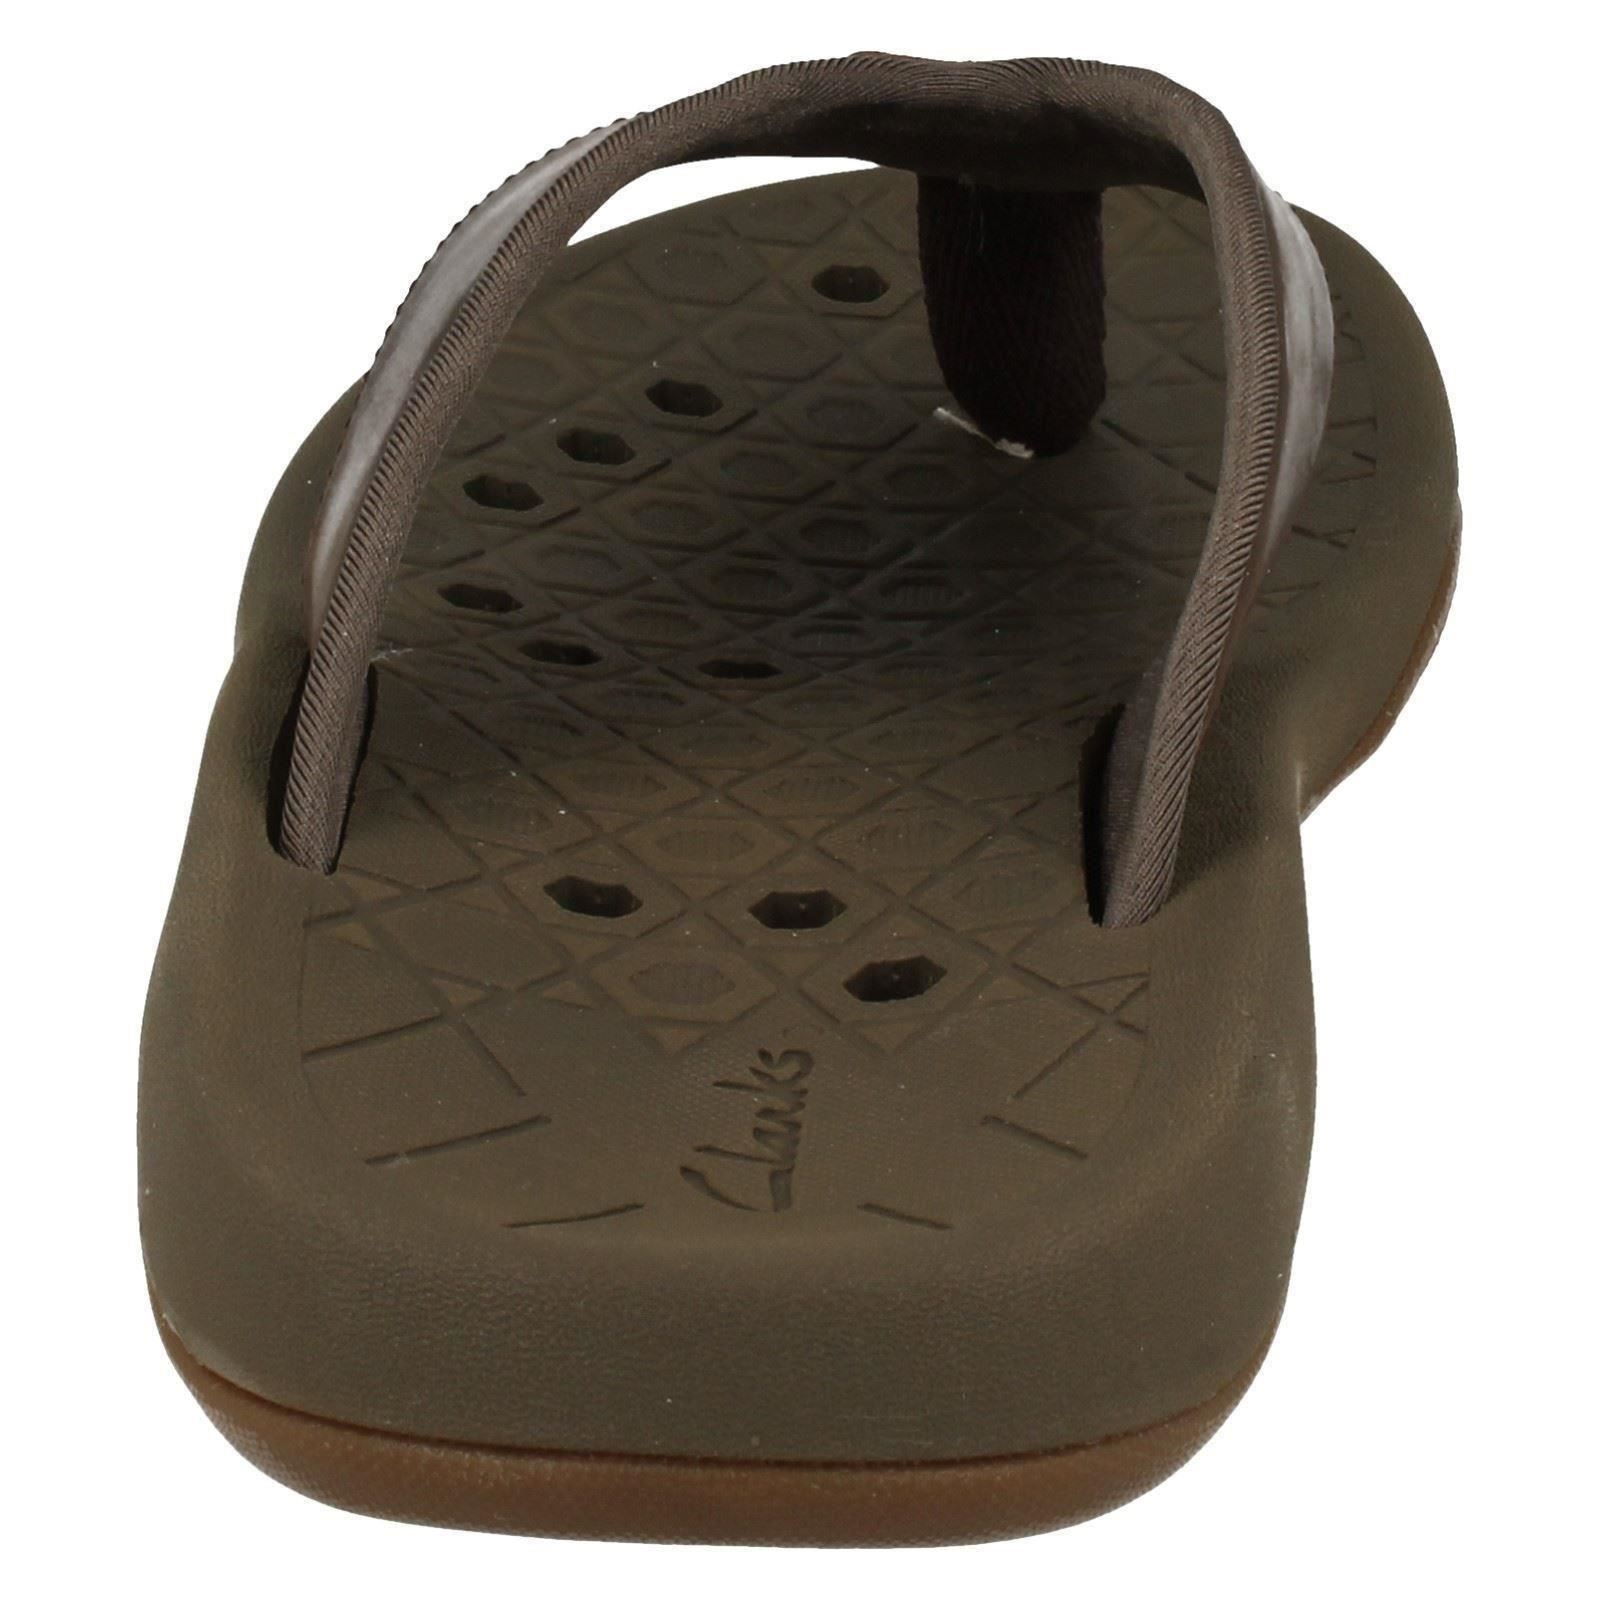 6fcd2575eca2 Mens Clarks Sandals  Bosun Coast   Picture 2 of 10  Picture 3 of 10 ...